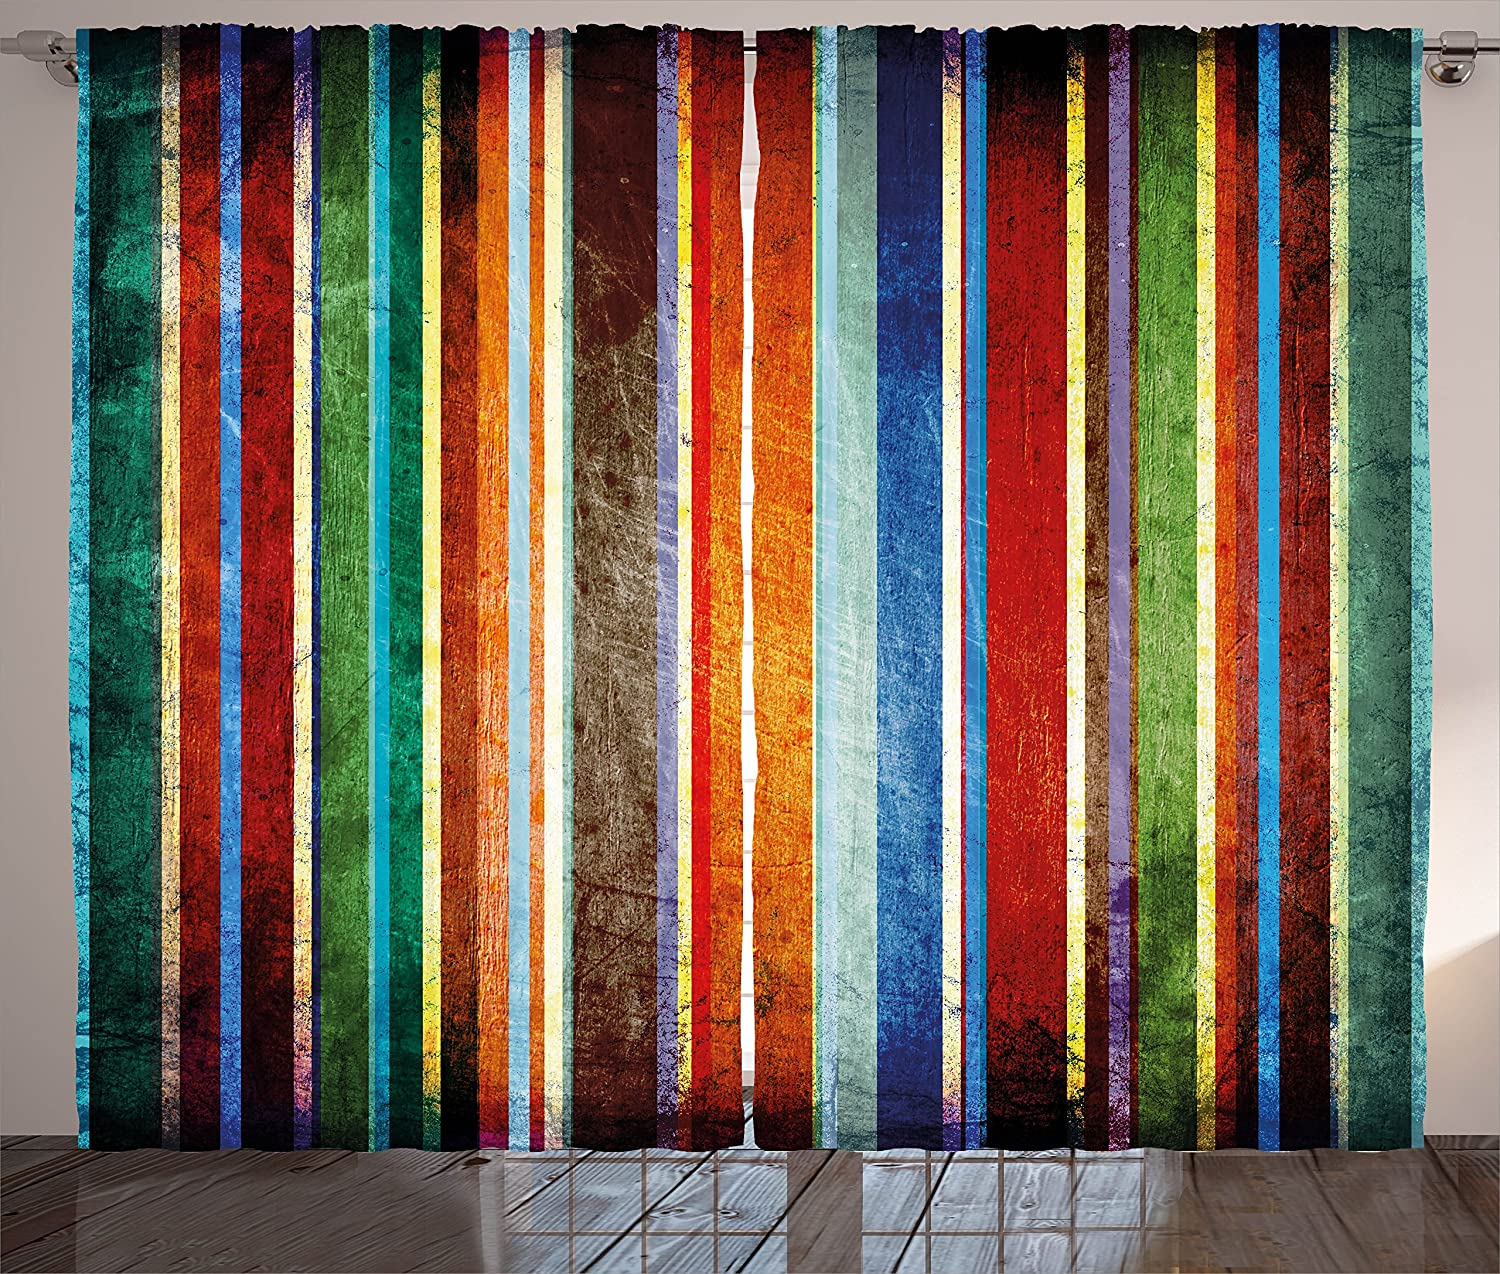 "Ambesonne Stripes Curtains, Vertical Lines Colorful Retro Bands Damage Effects Old Fashion Weathered Display, Living Room Bedroom Window Drapes 2 Panel Set, 108"" X 84"", Green Red"